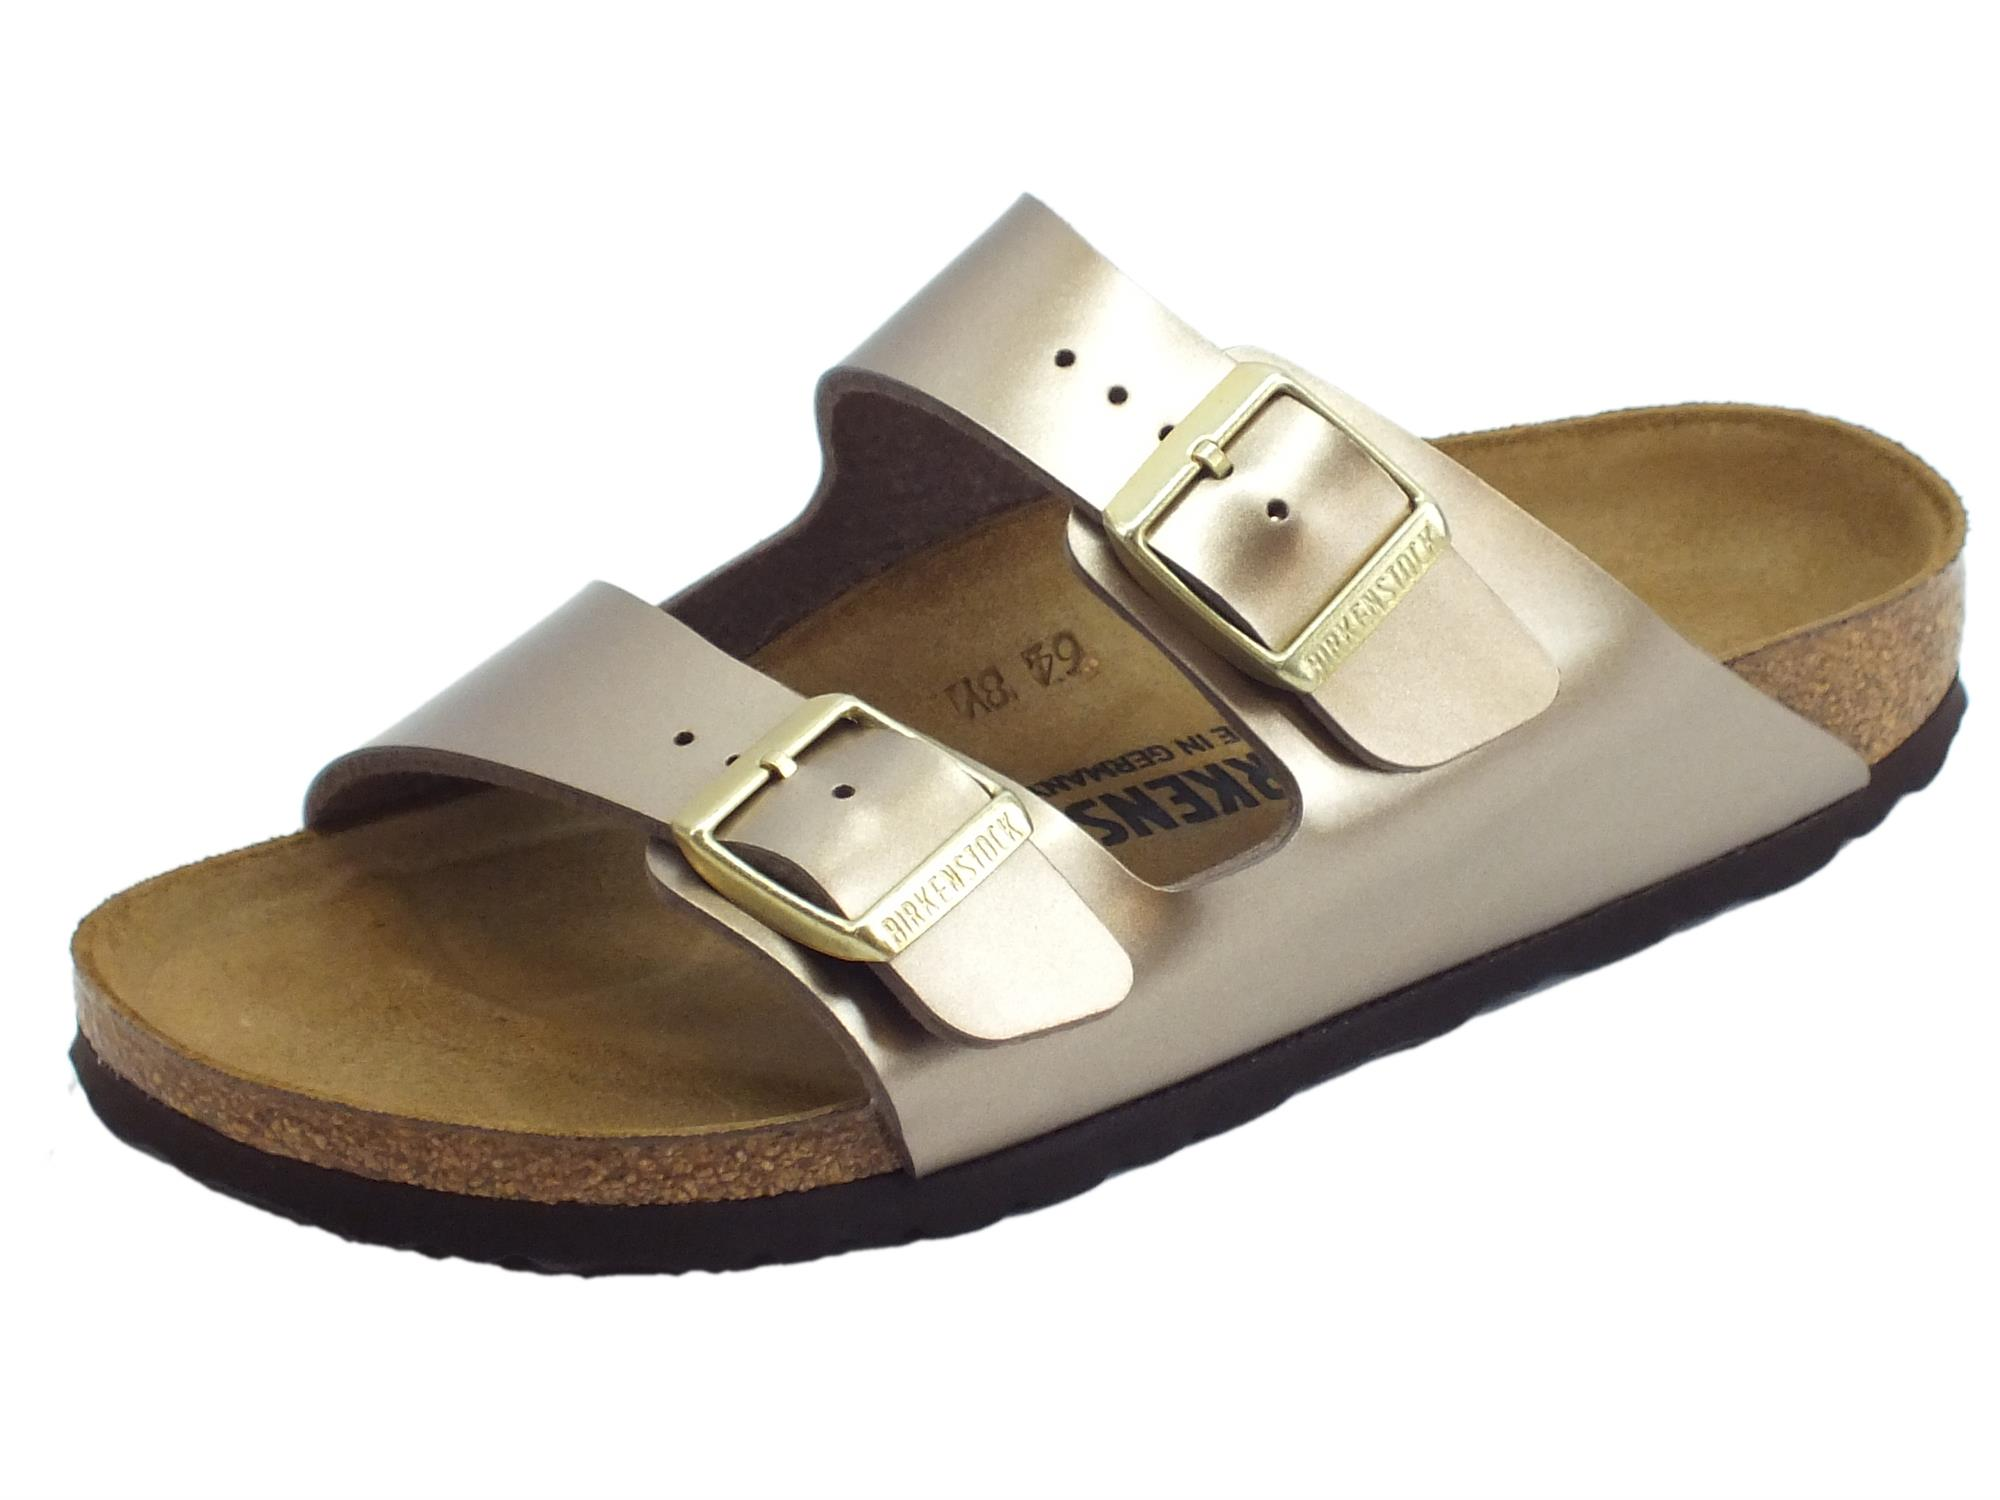 Birkenstock Gomma Arizona Metallico Colore Hqcdstrx Donna Sandali Bs qSzVUMp